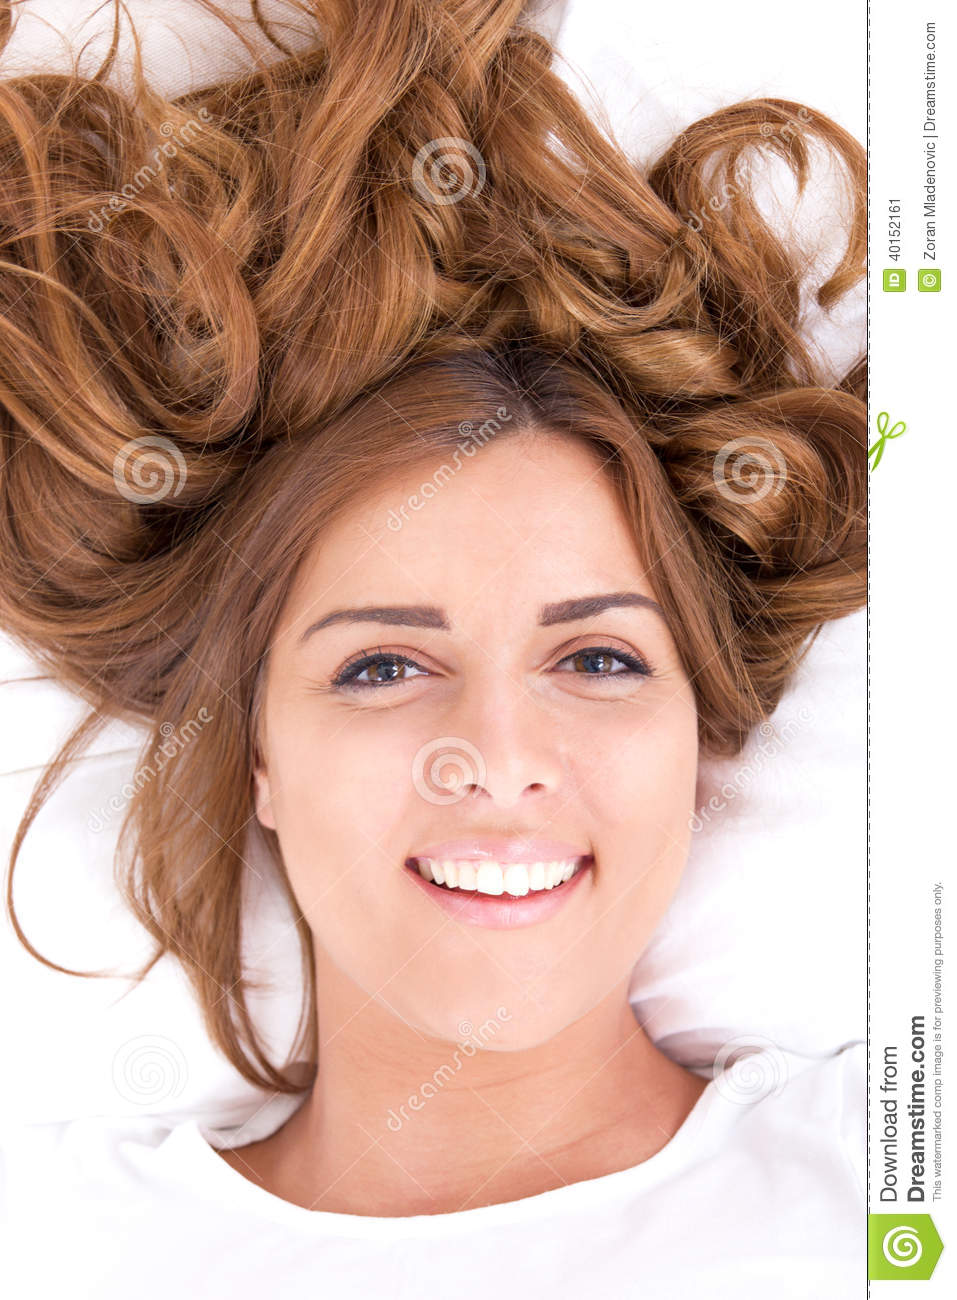 Young woman lying on bed with hair spread out